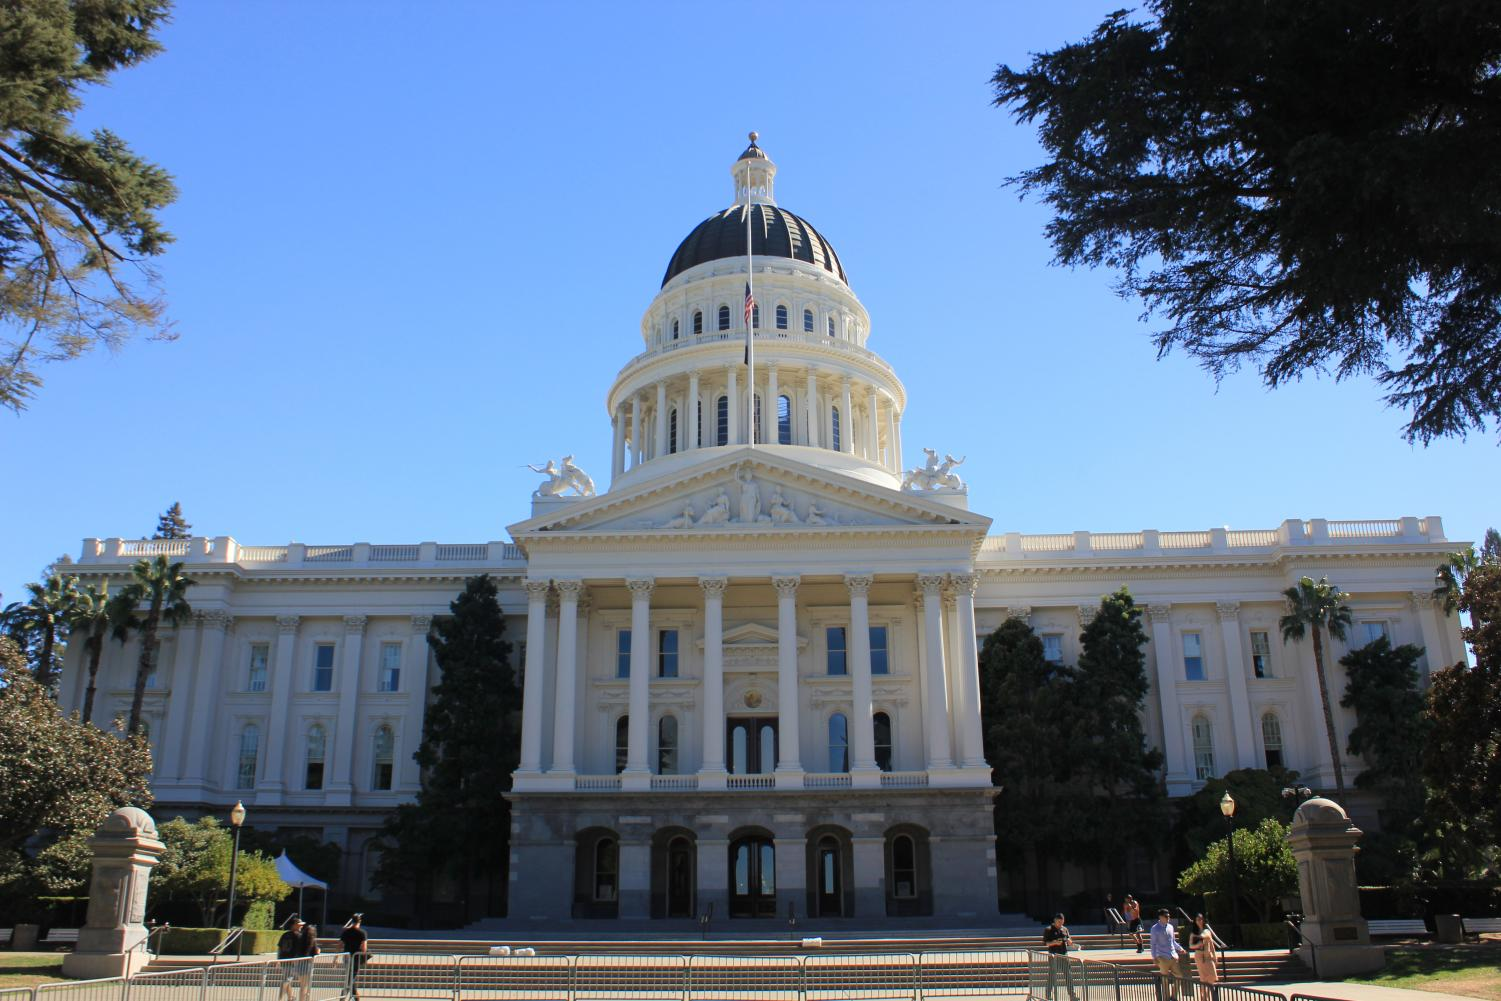 This month, Gov. Jerry Brown signed bills to protect people from sexual harassment, sexual assault, discrimination in the work place and nondisclosure agreements.